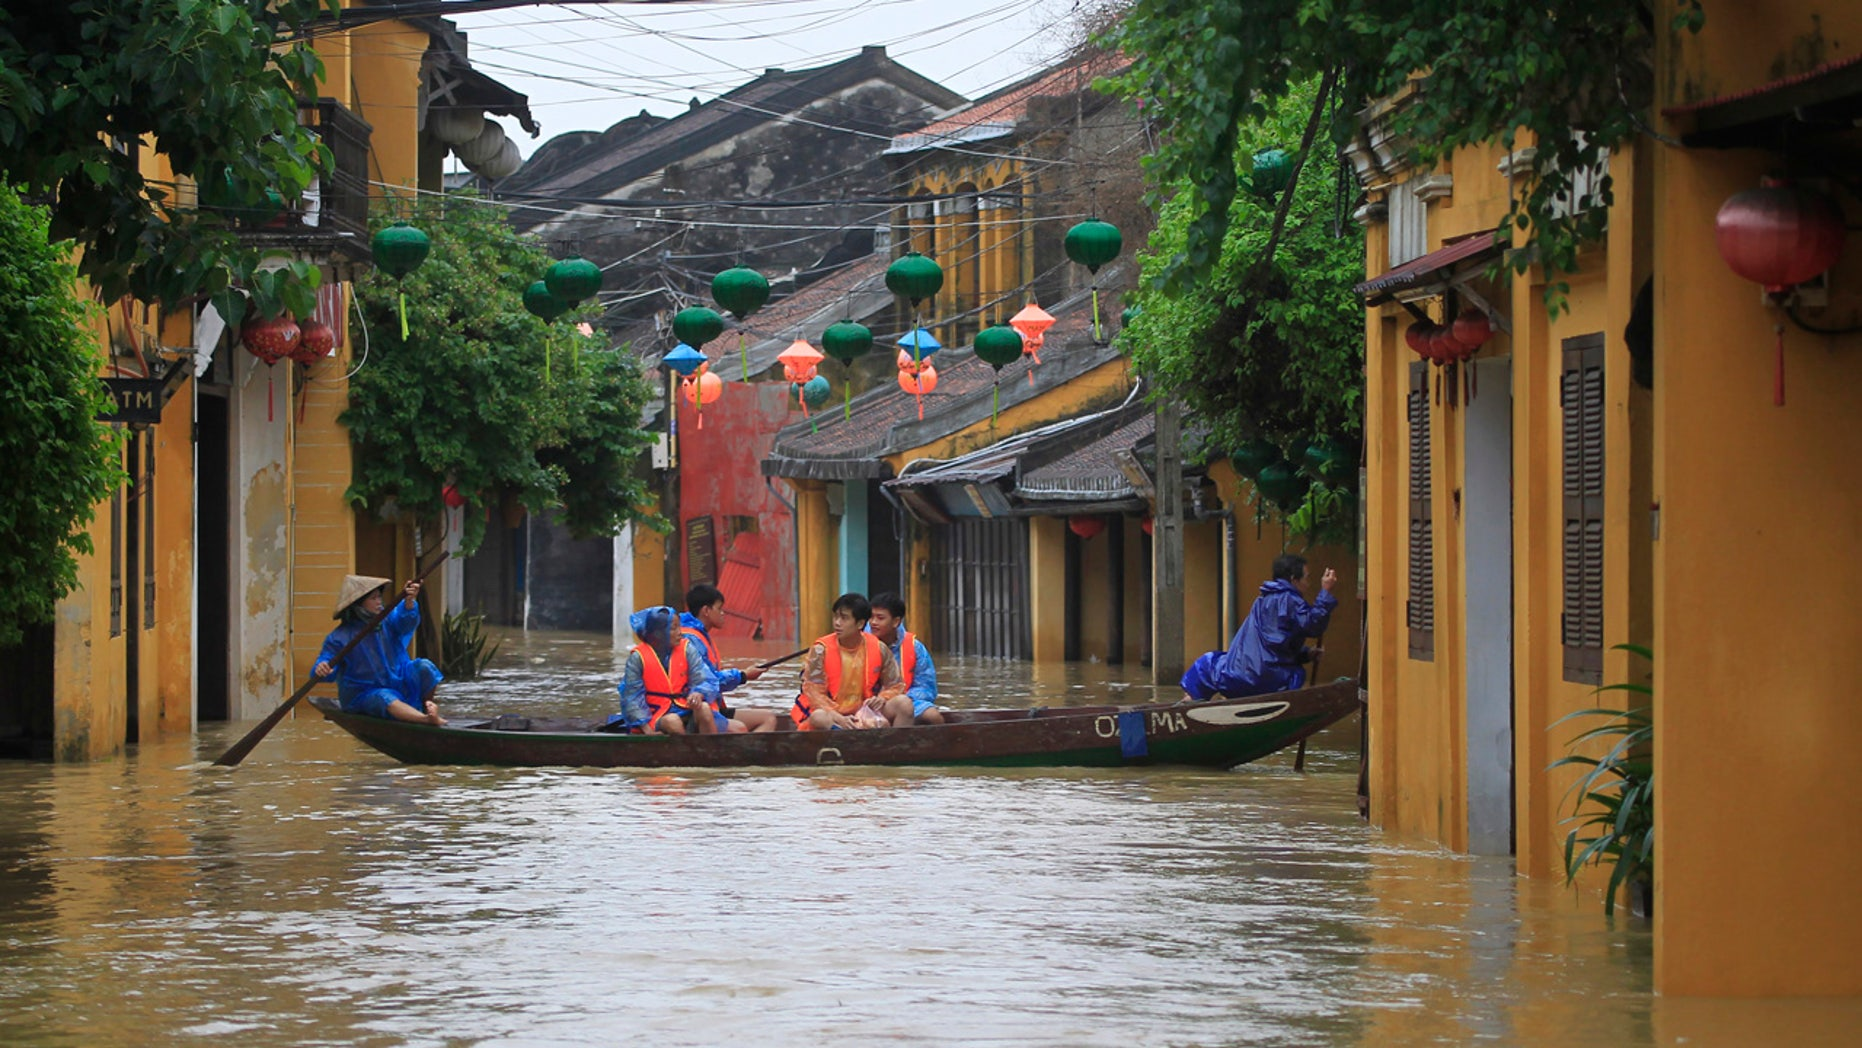 People ride a boat in flooded street in Hoi An, Vietnam, Monday, Nov. 6, 2017.